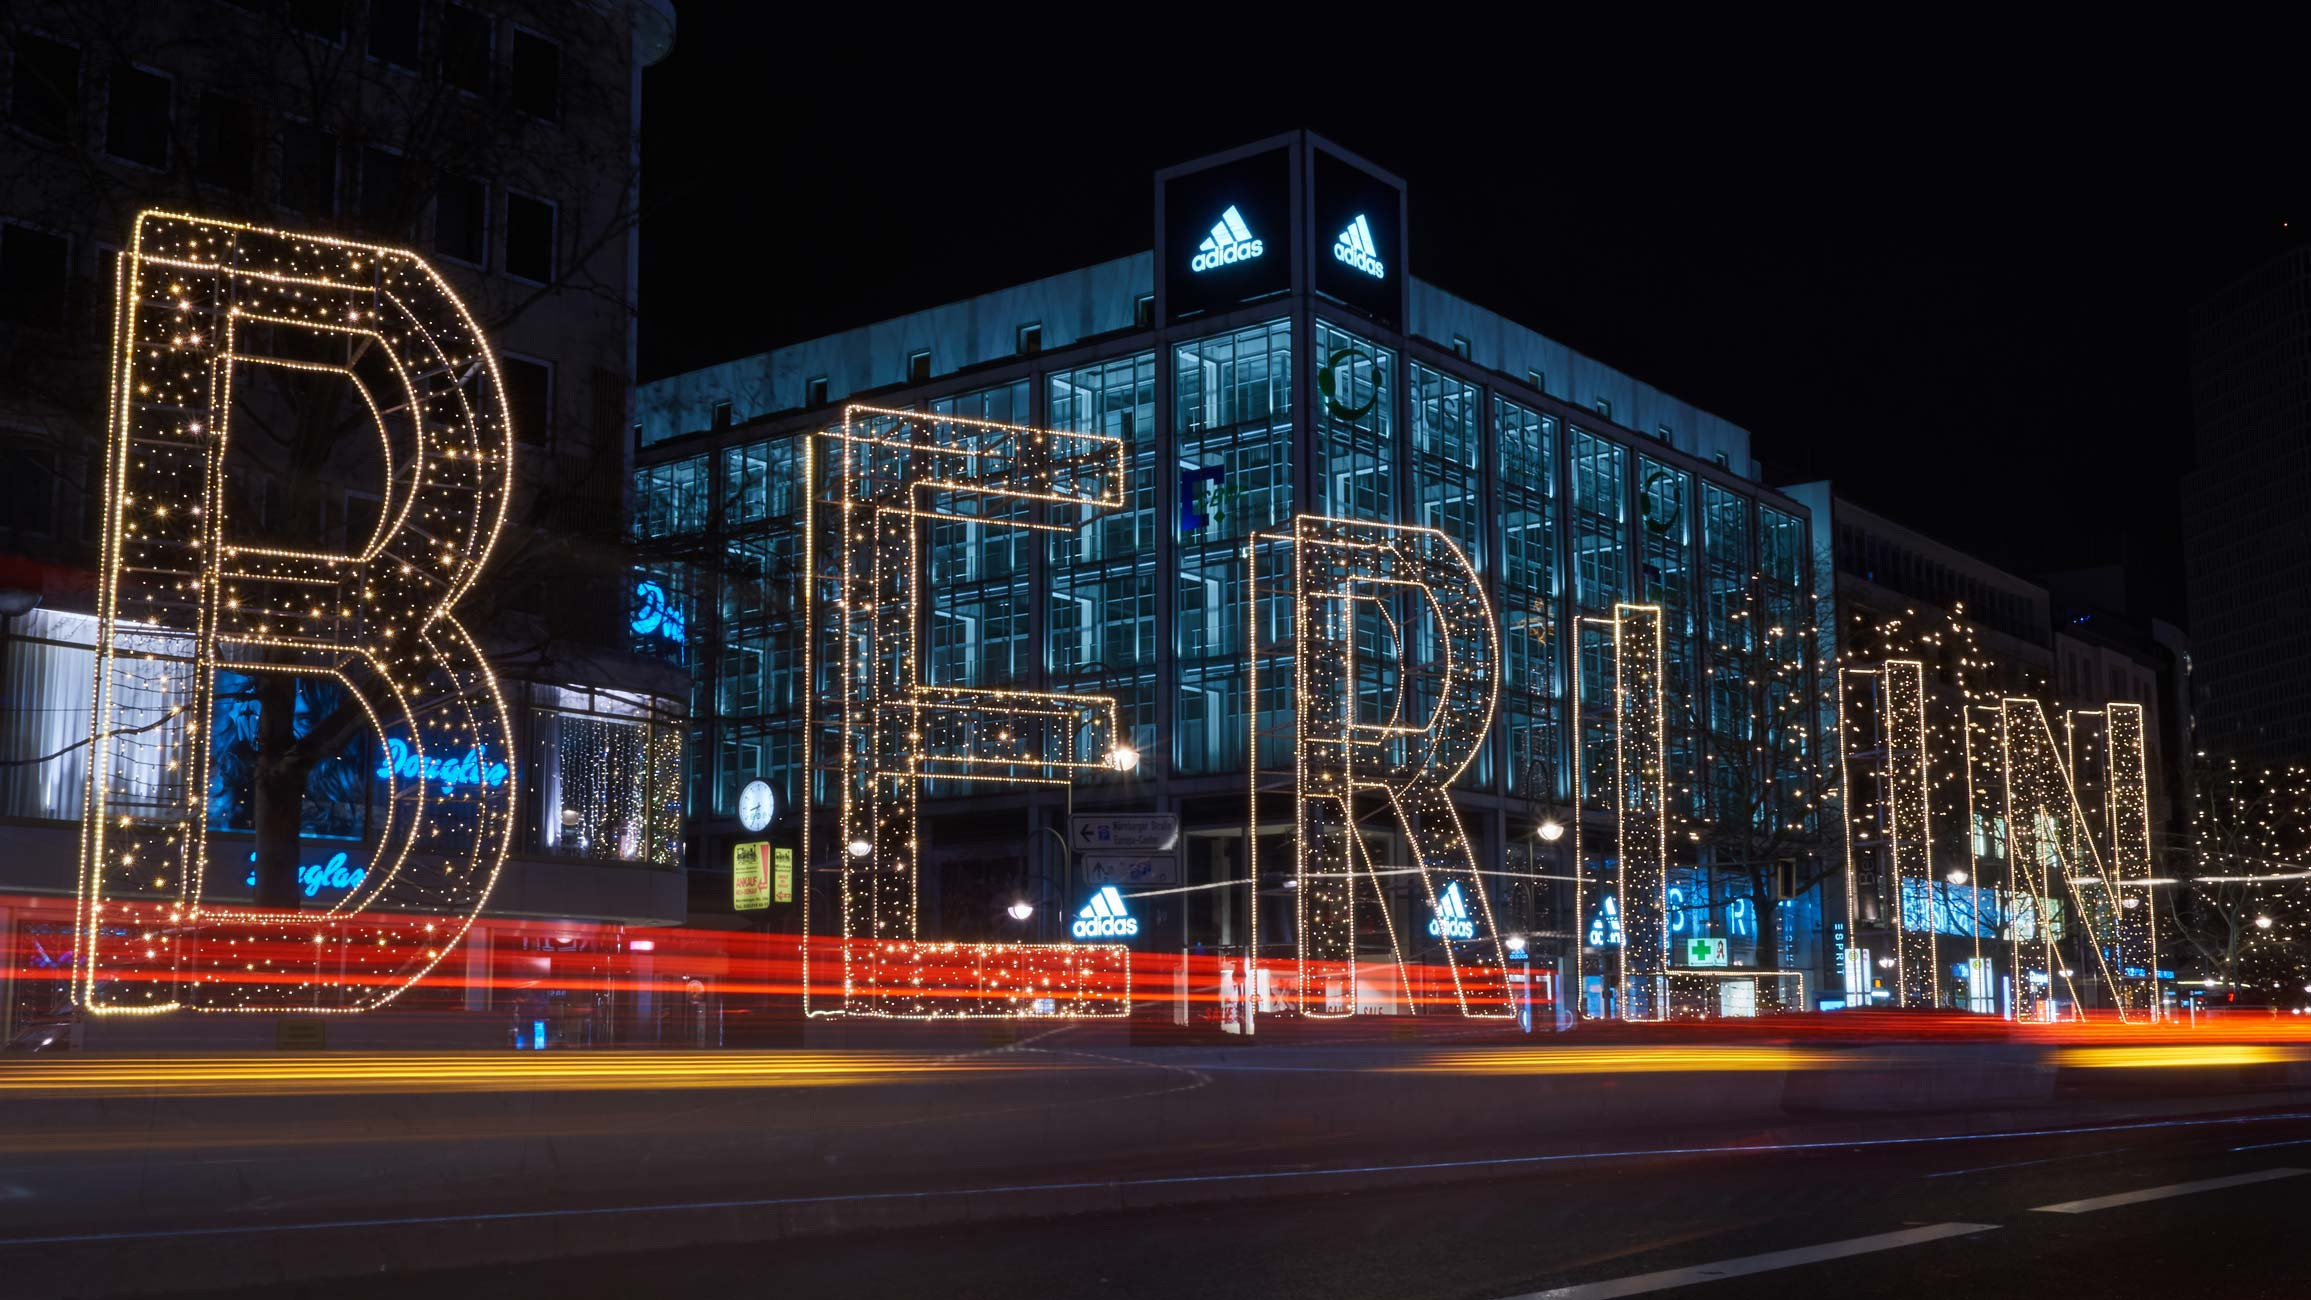 Berlin hotels and flights guide